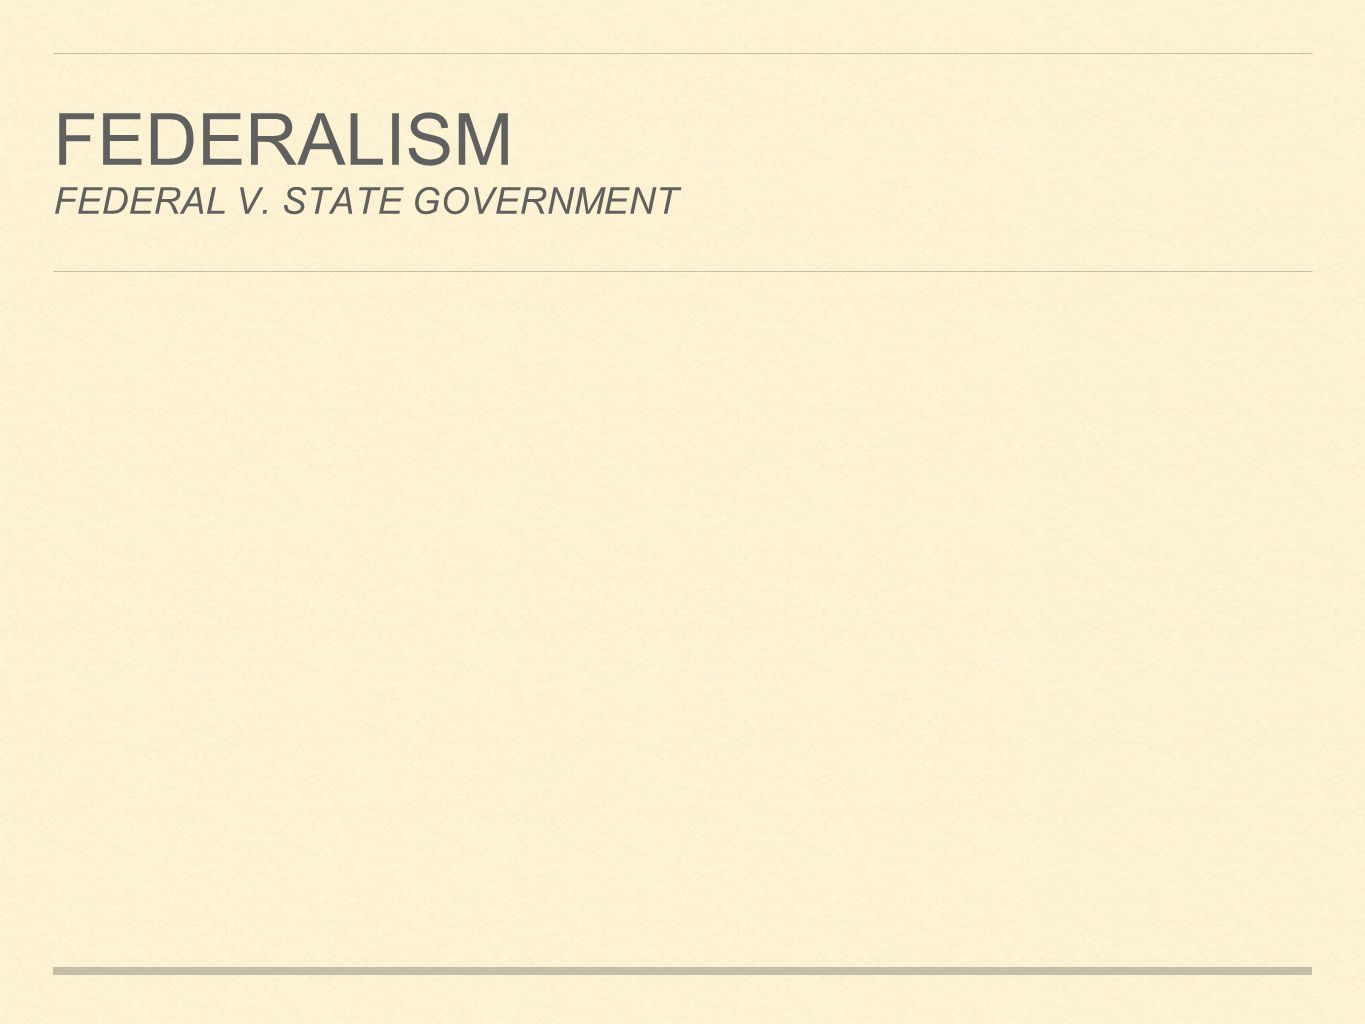 FEDERALISM FEDERAL V. STATE GOVERNMENT